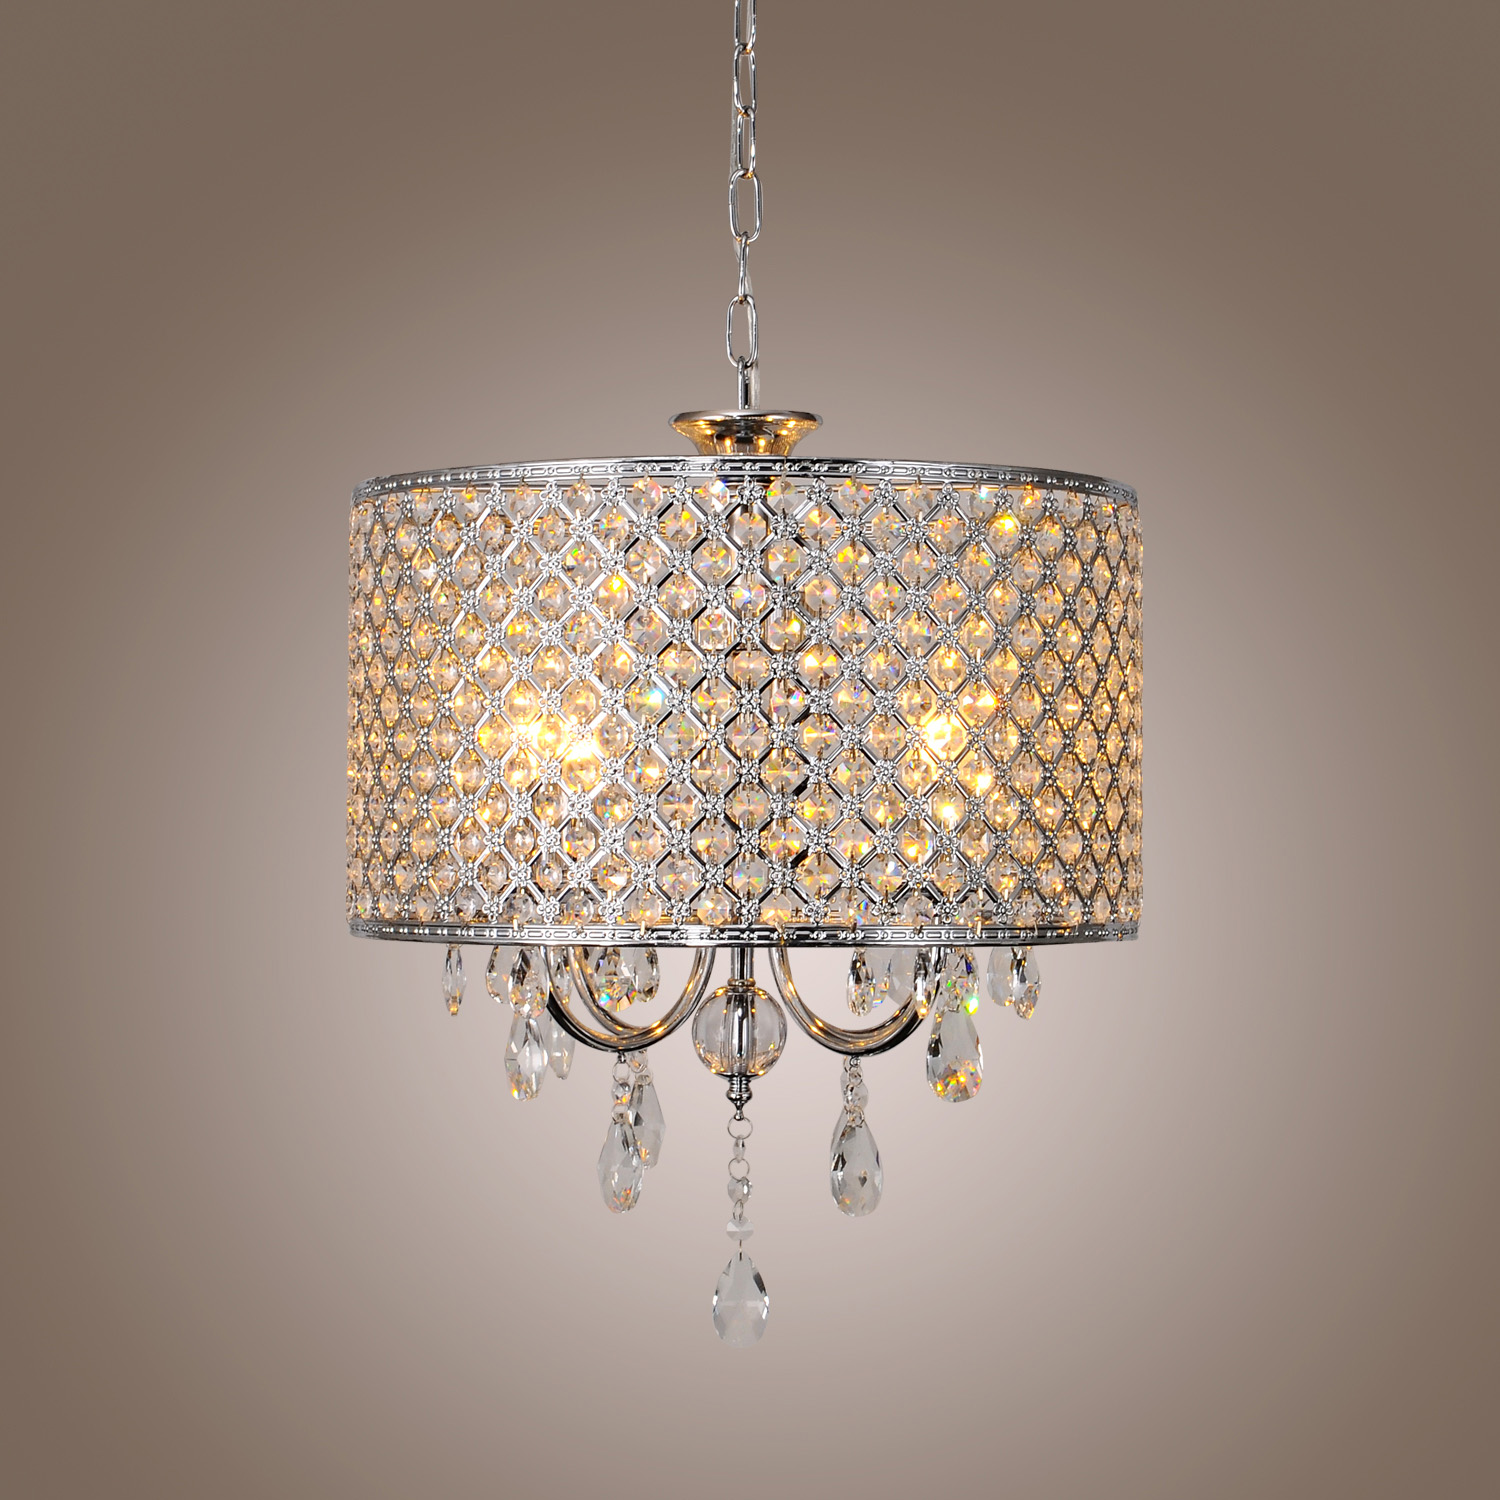 Modern pendant ceiling light crystal lighting dining for Modern crystal chandelier for dining room